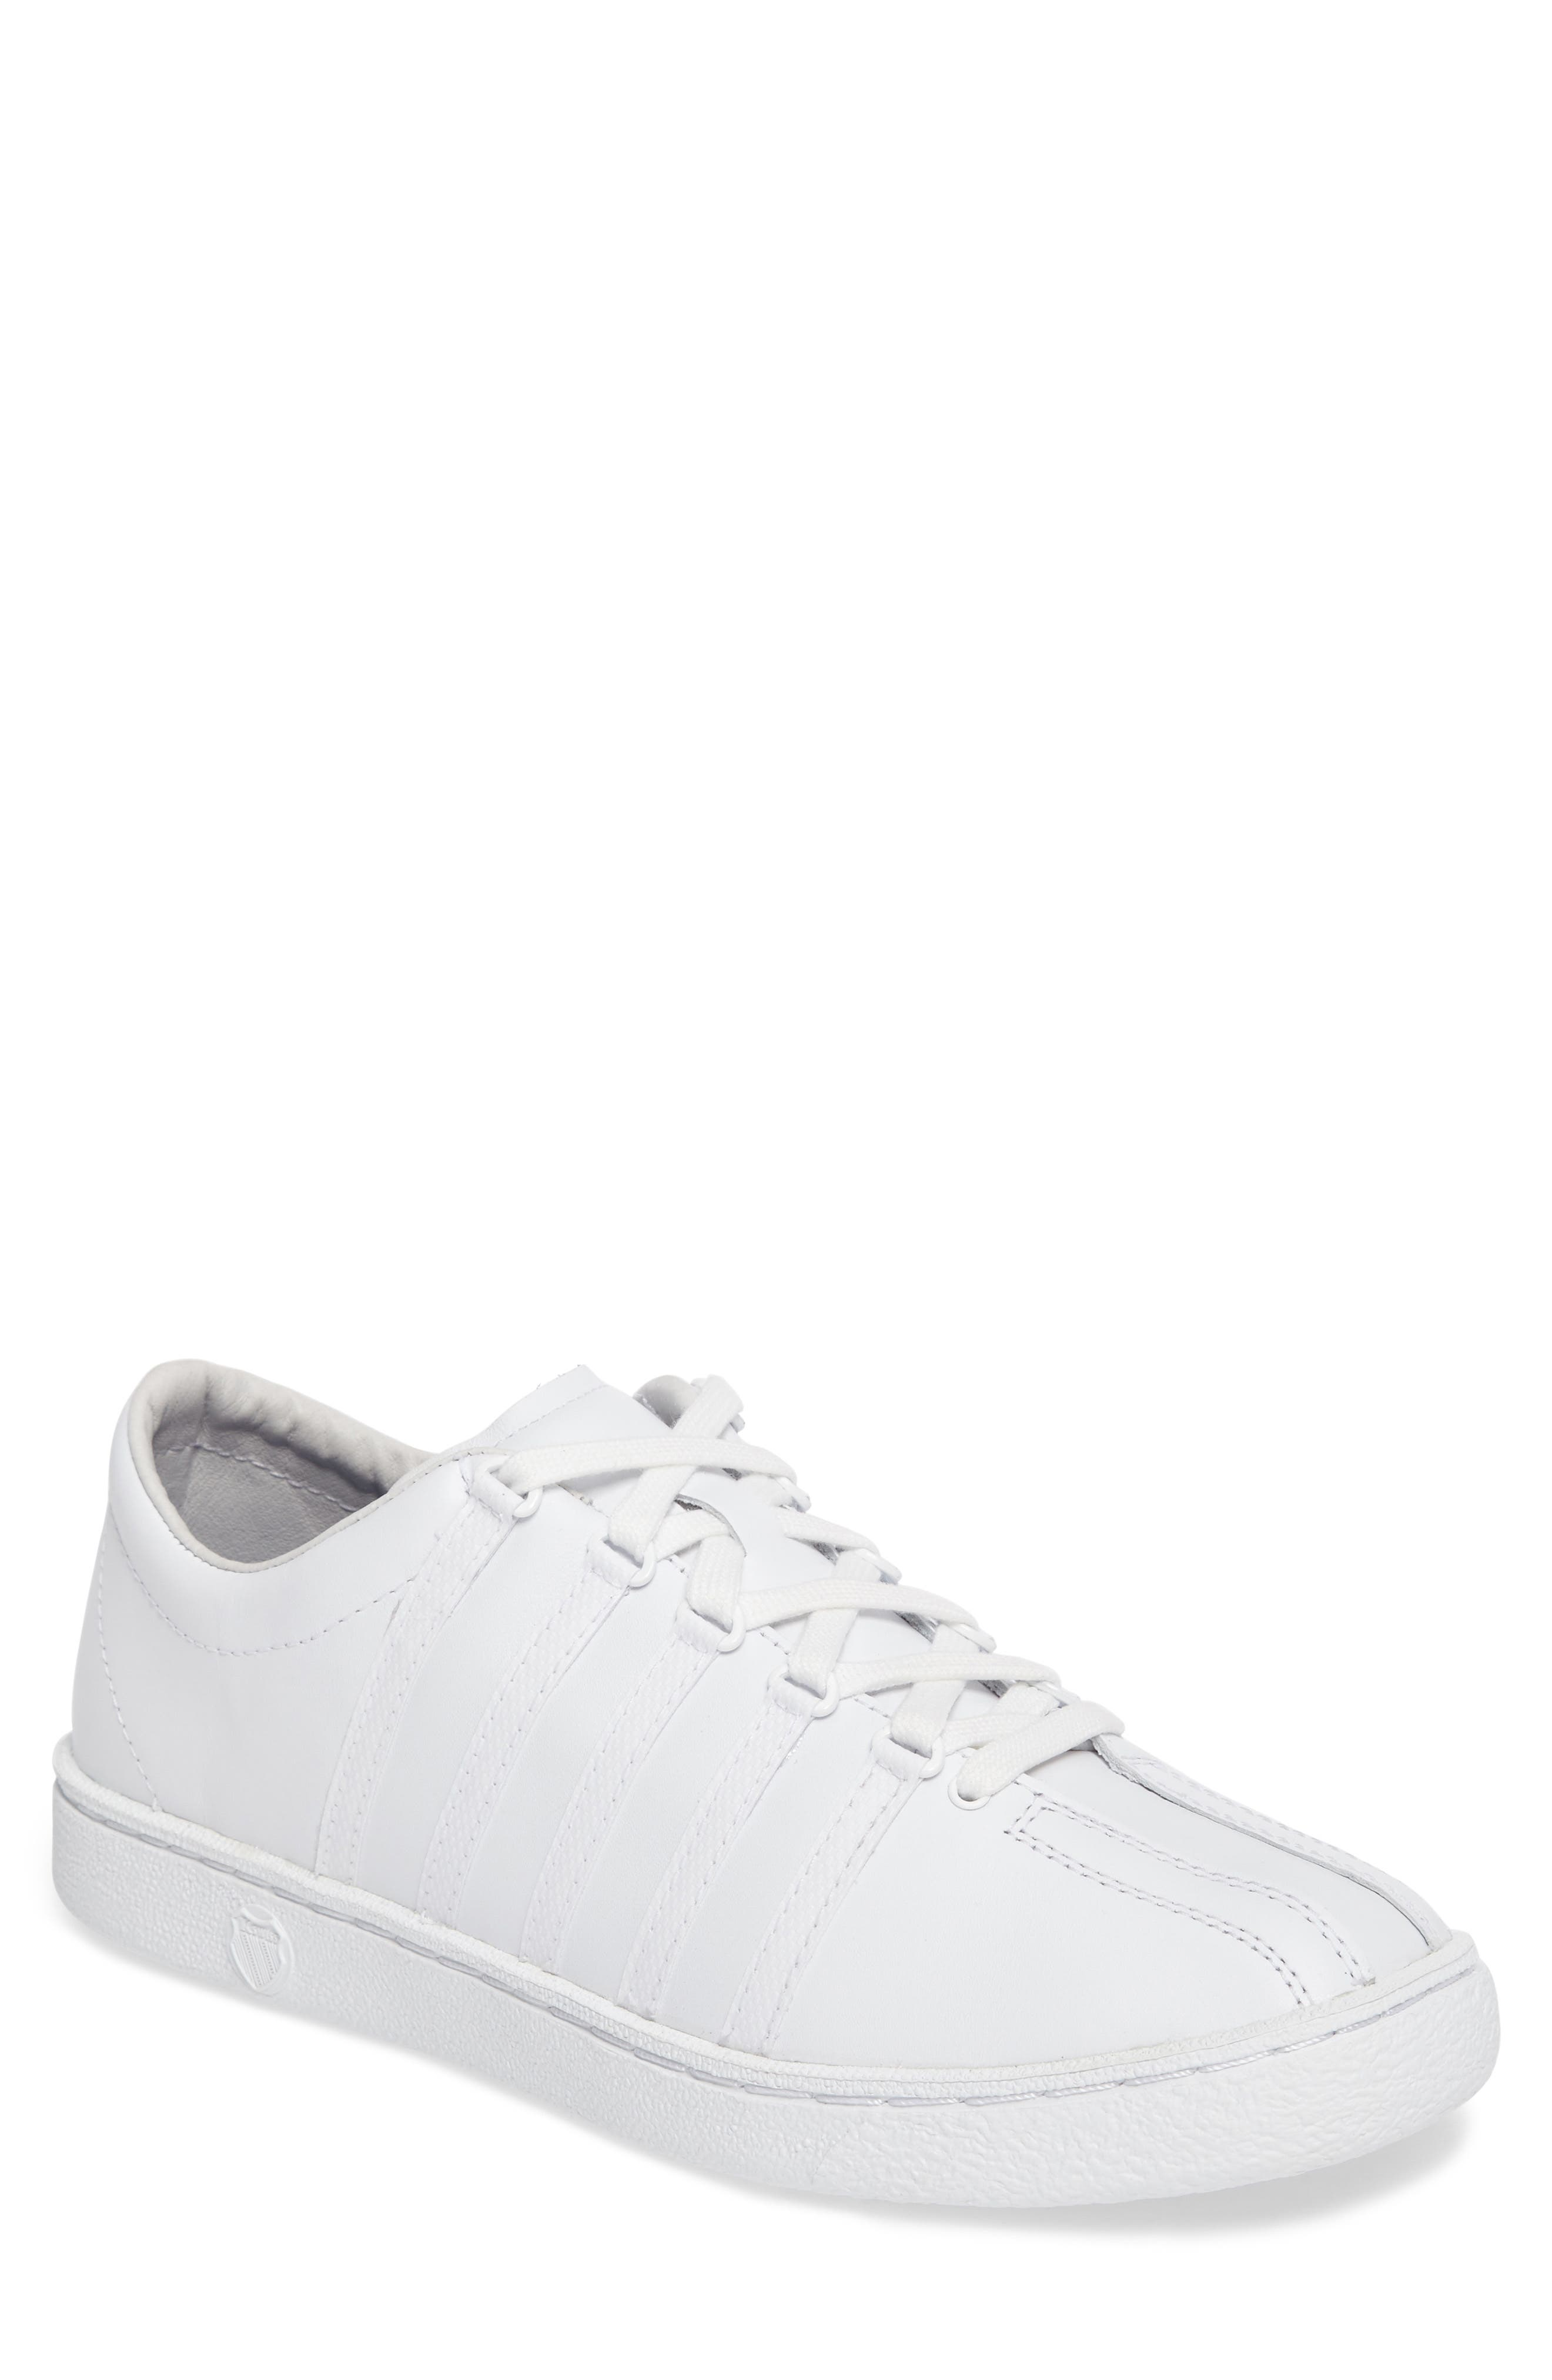 k swiss shoes autumn 2018 hairstyles for boys